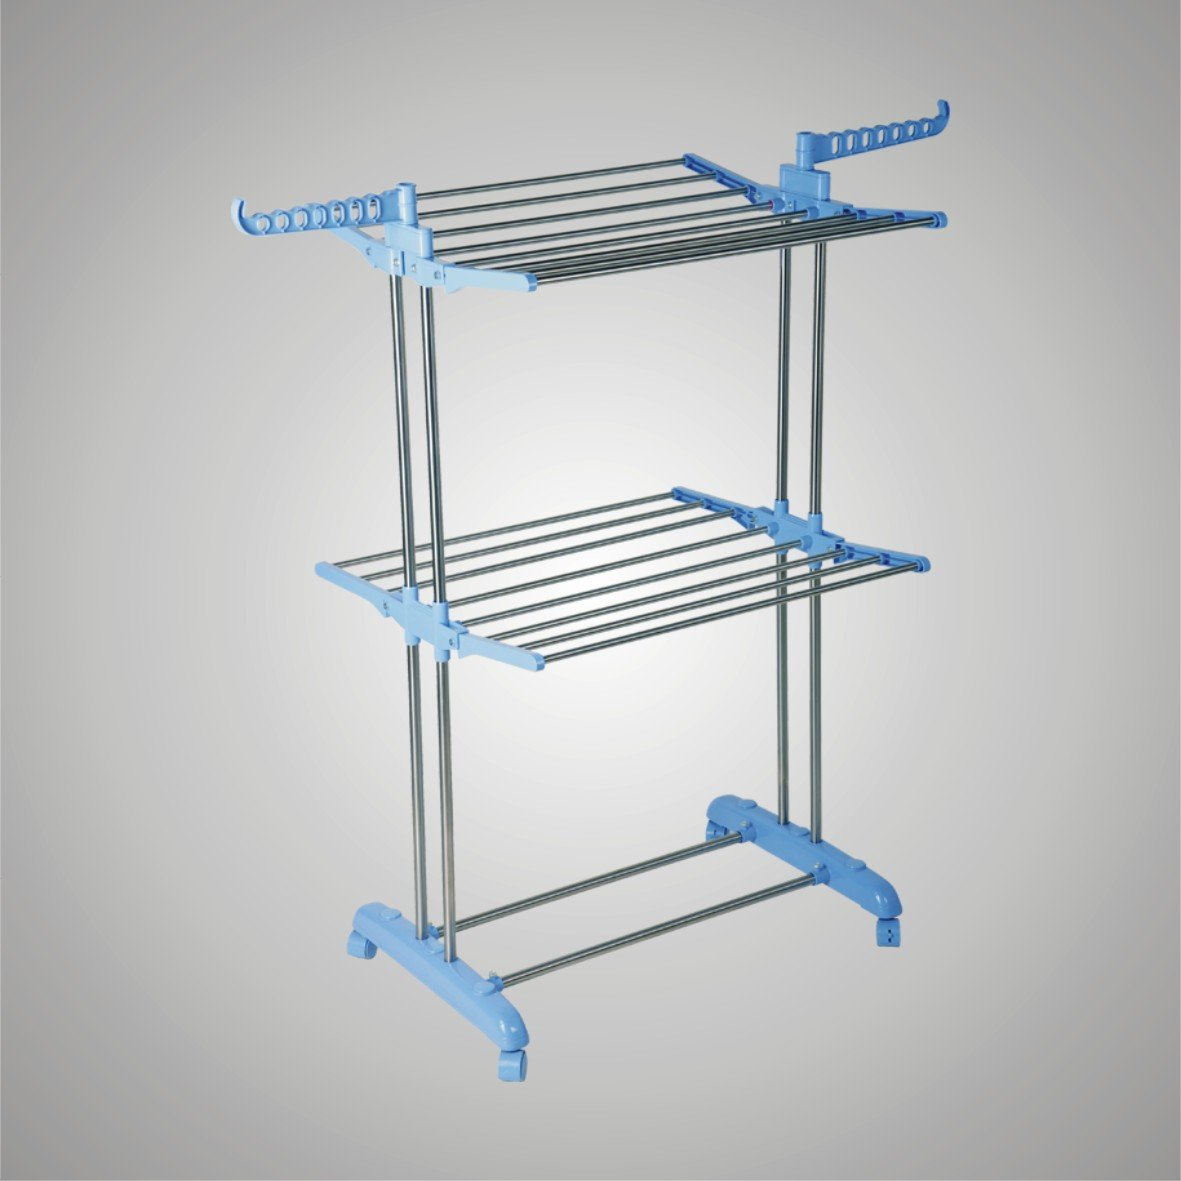 Stainless Steel Multifunctional Two Layers Clothes Rack , Folding Clothes Drying Racks MR-8021